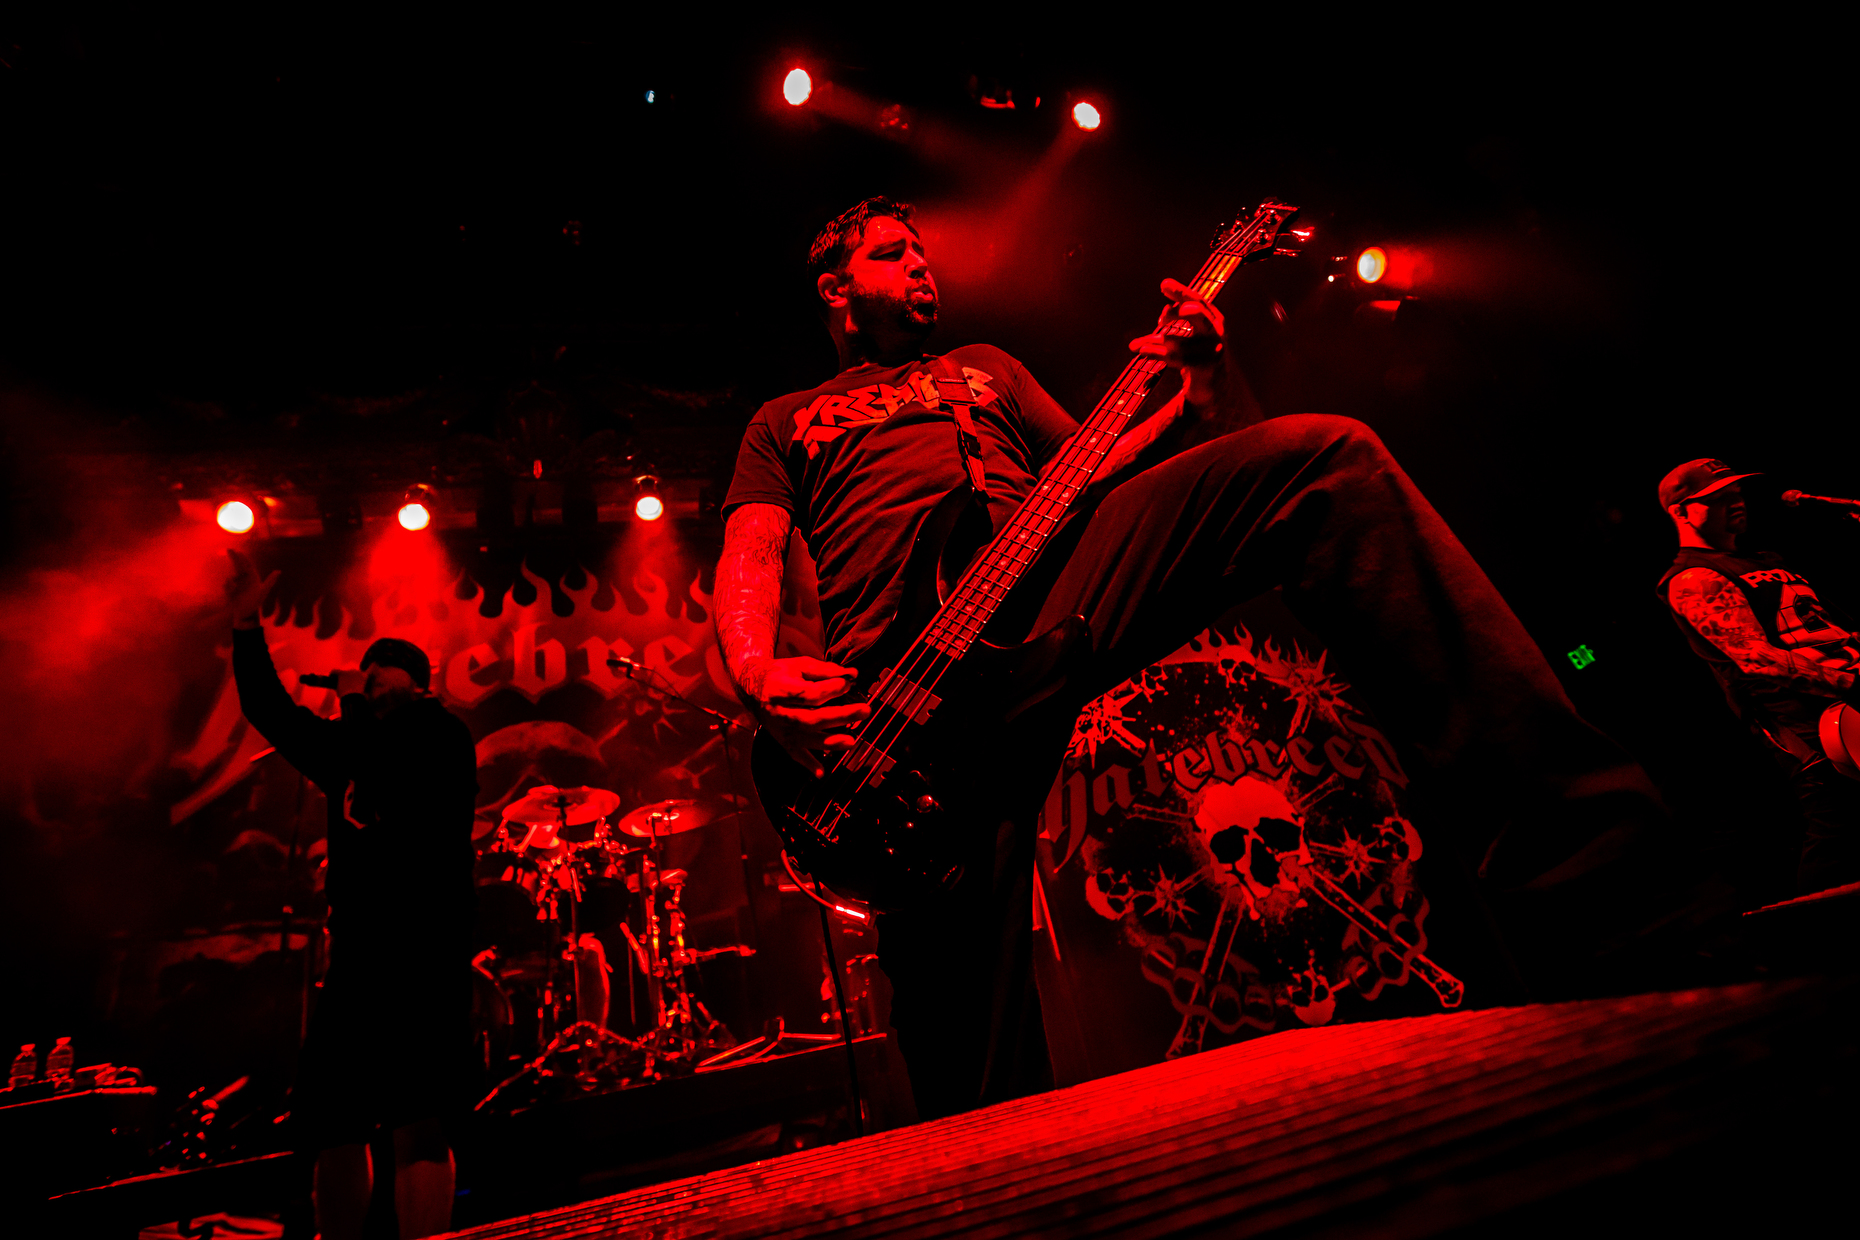 HATEBREED0025.JPG